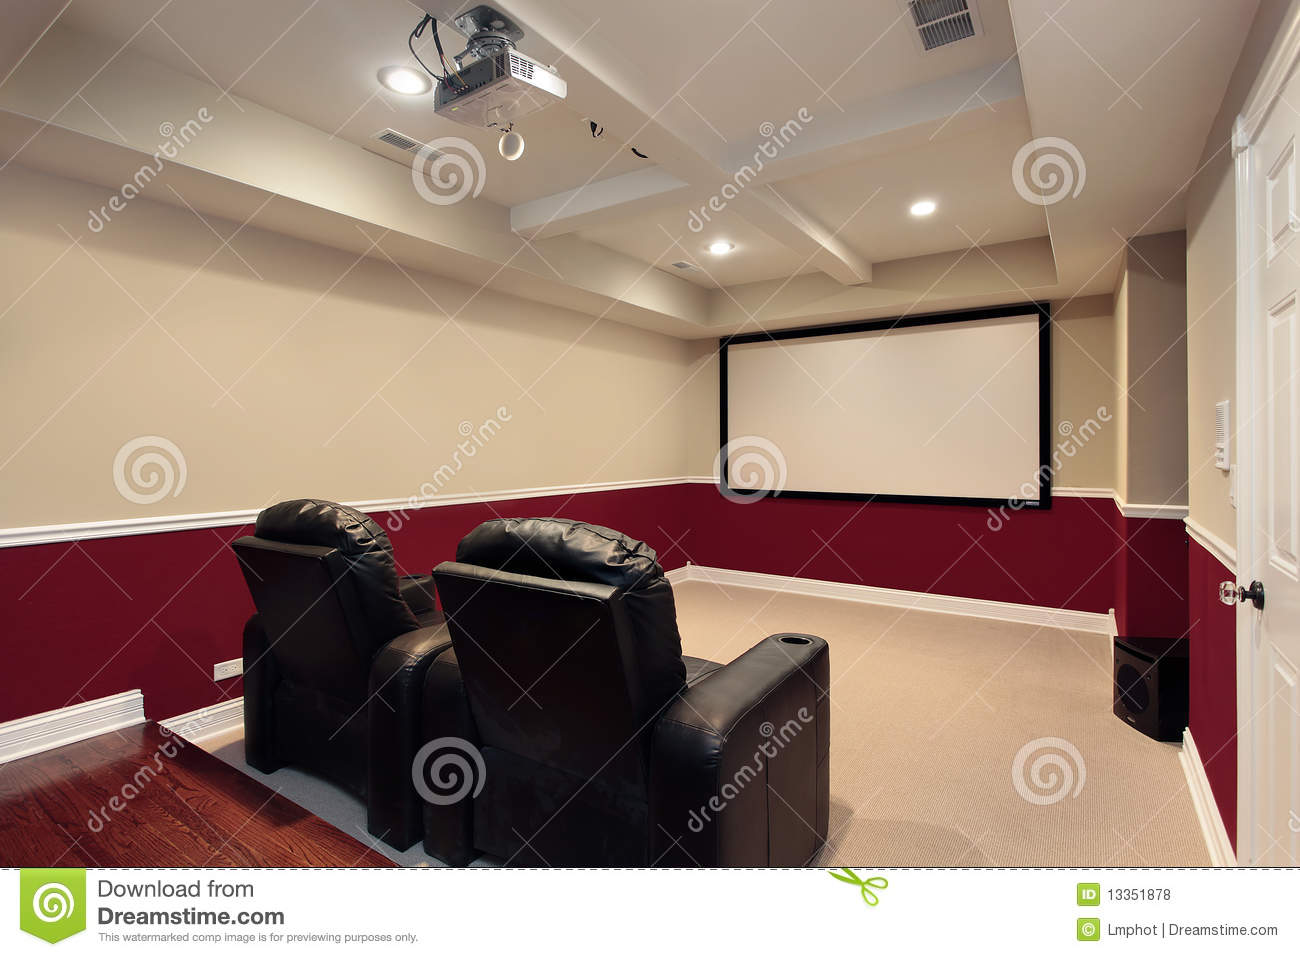 Media room with home theater chairs royalty free stock for Furniture for media room